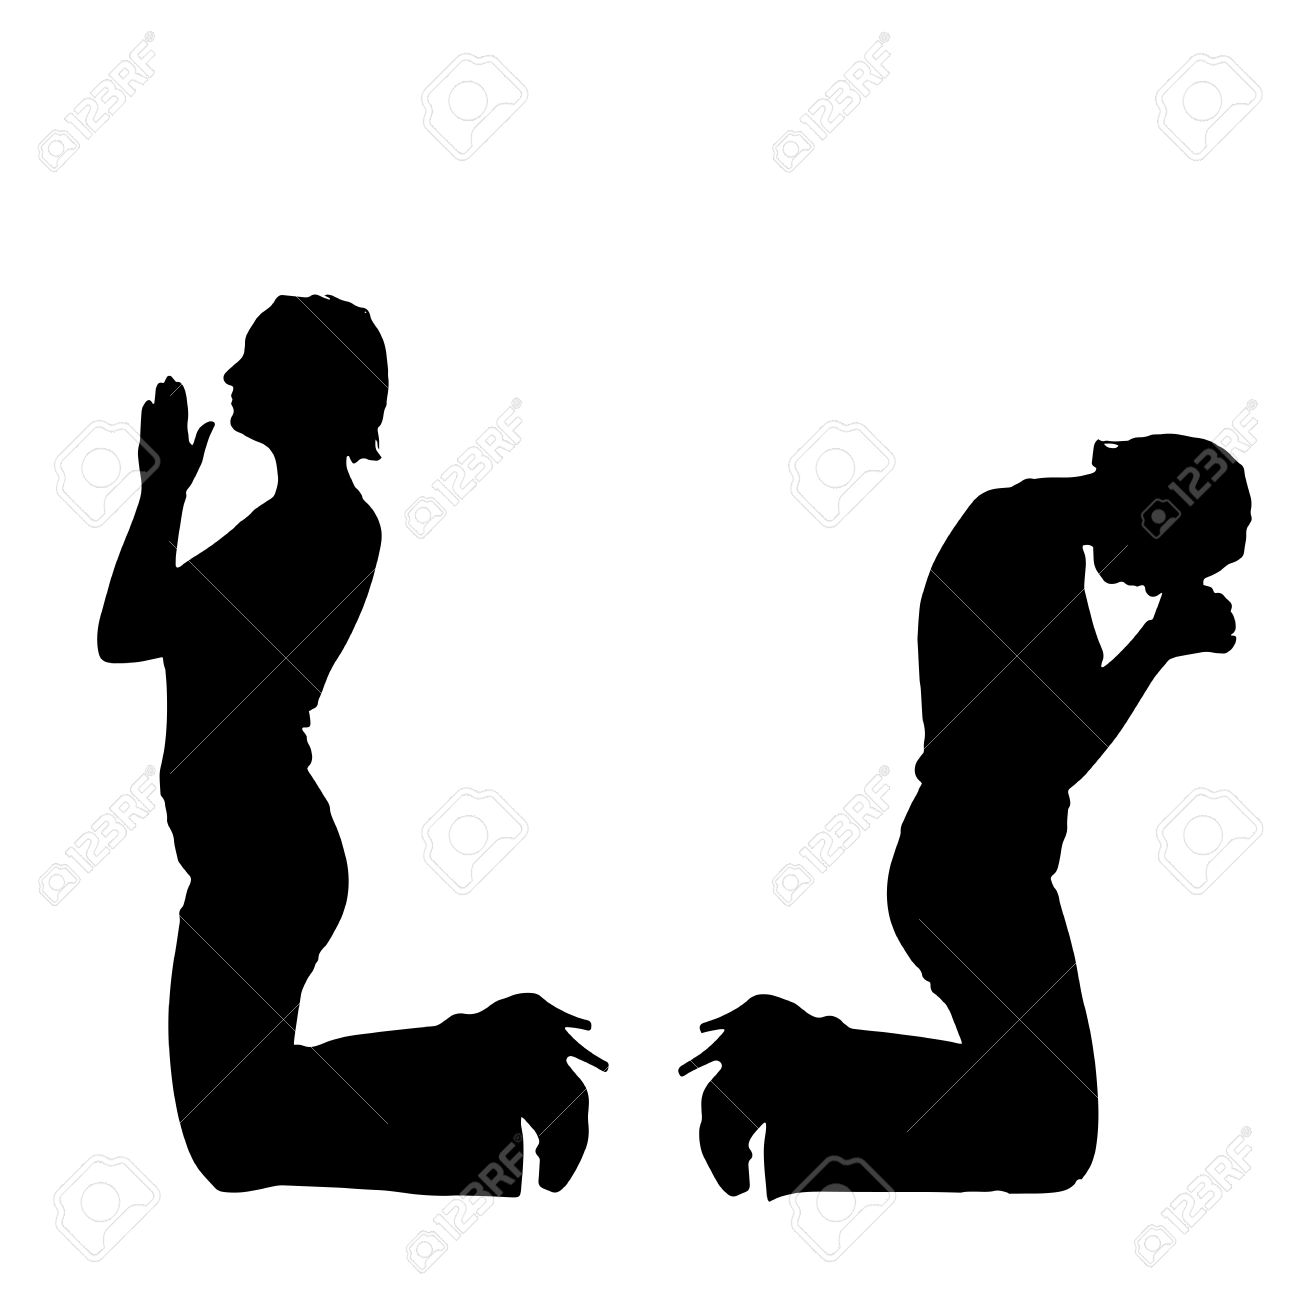 Silhouette Of A Woman Praying Clipart.